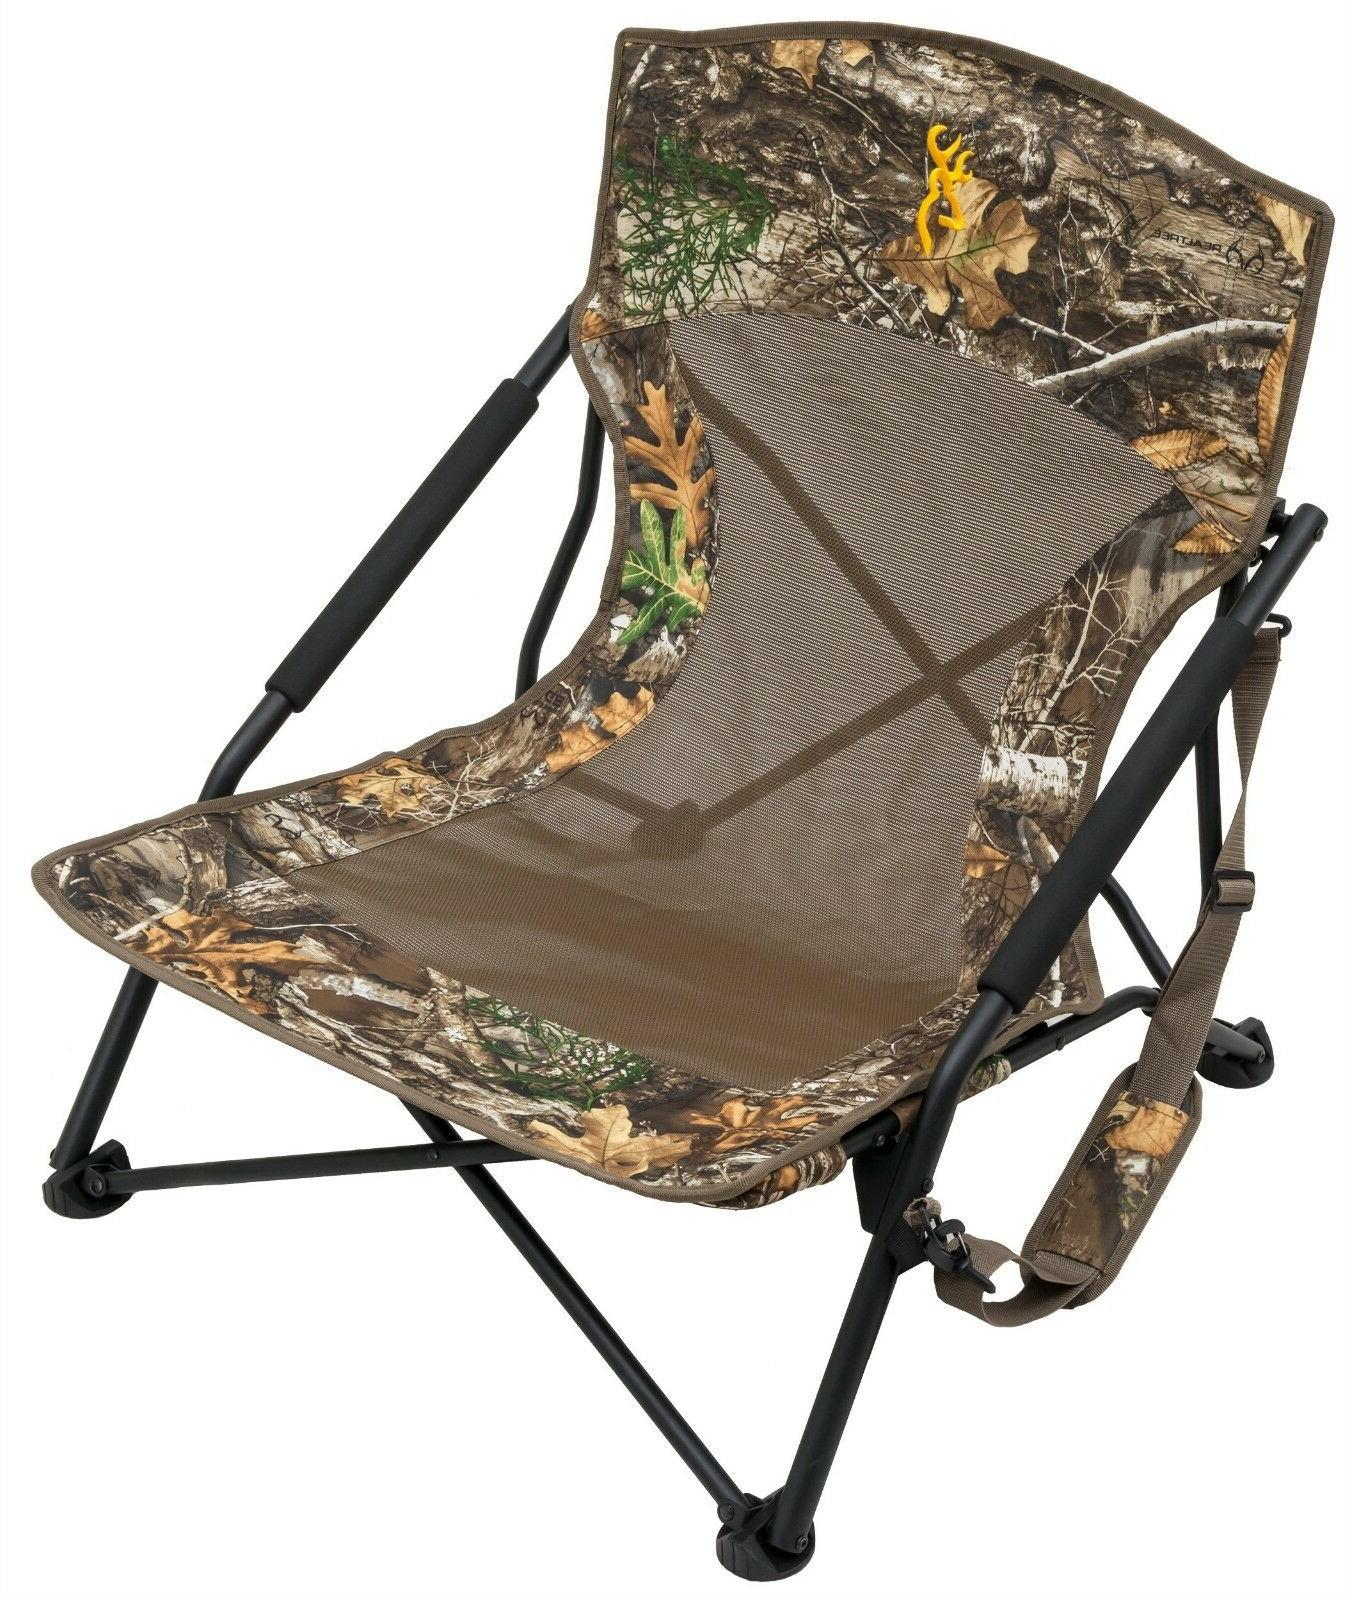 "Folding W/ Arms 22"" W/ 8"" Carry Bag Chair"